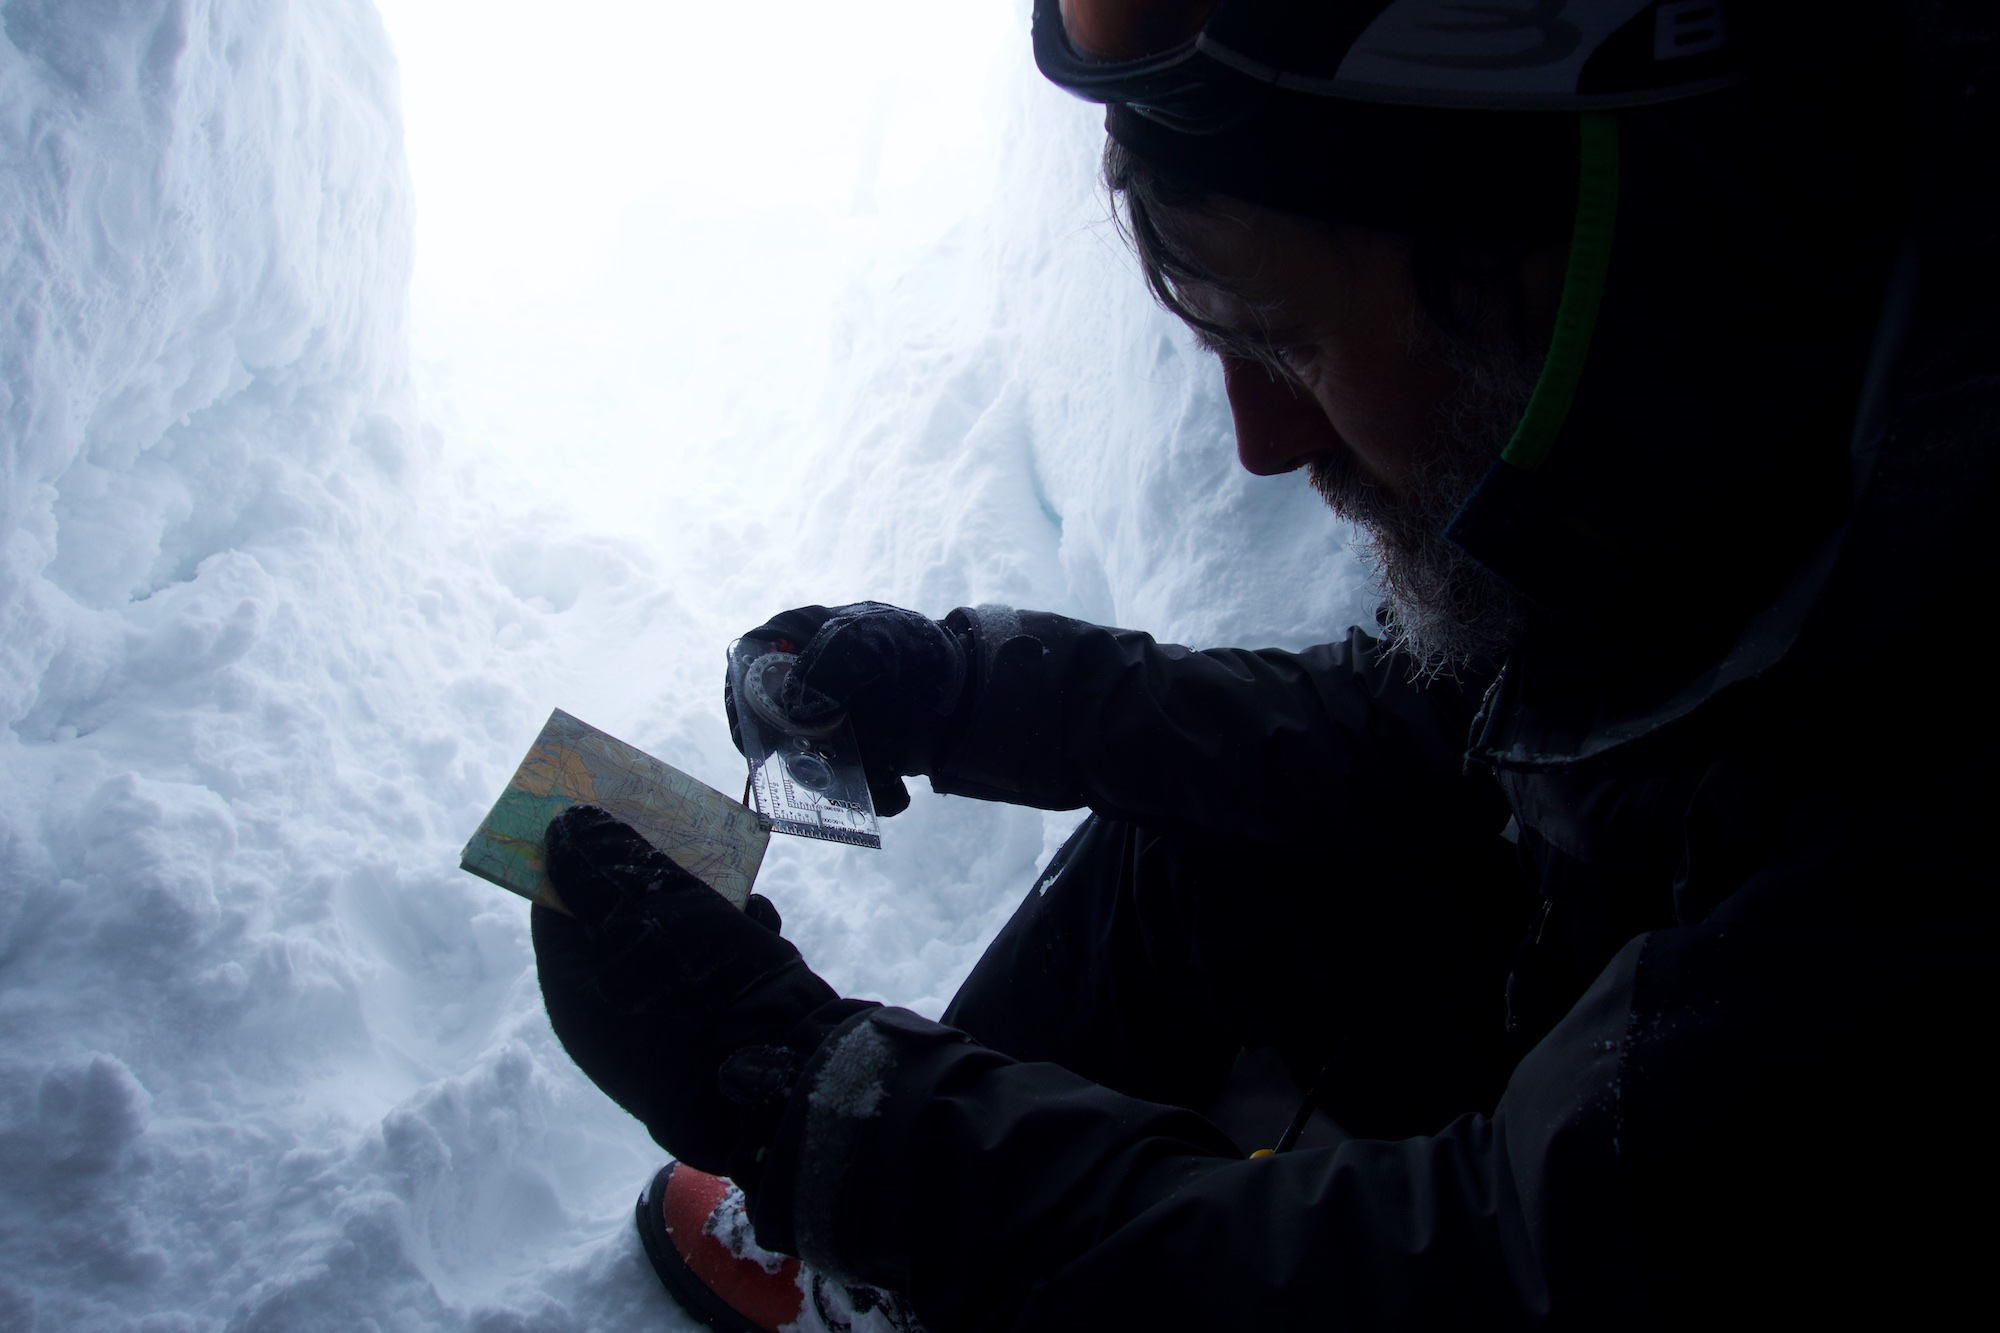 A man uses the corner of a compass to look at a map. He's sat inside a snow hole.